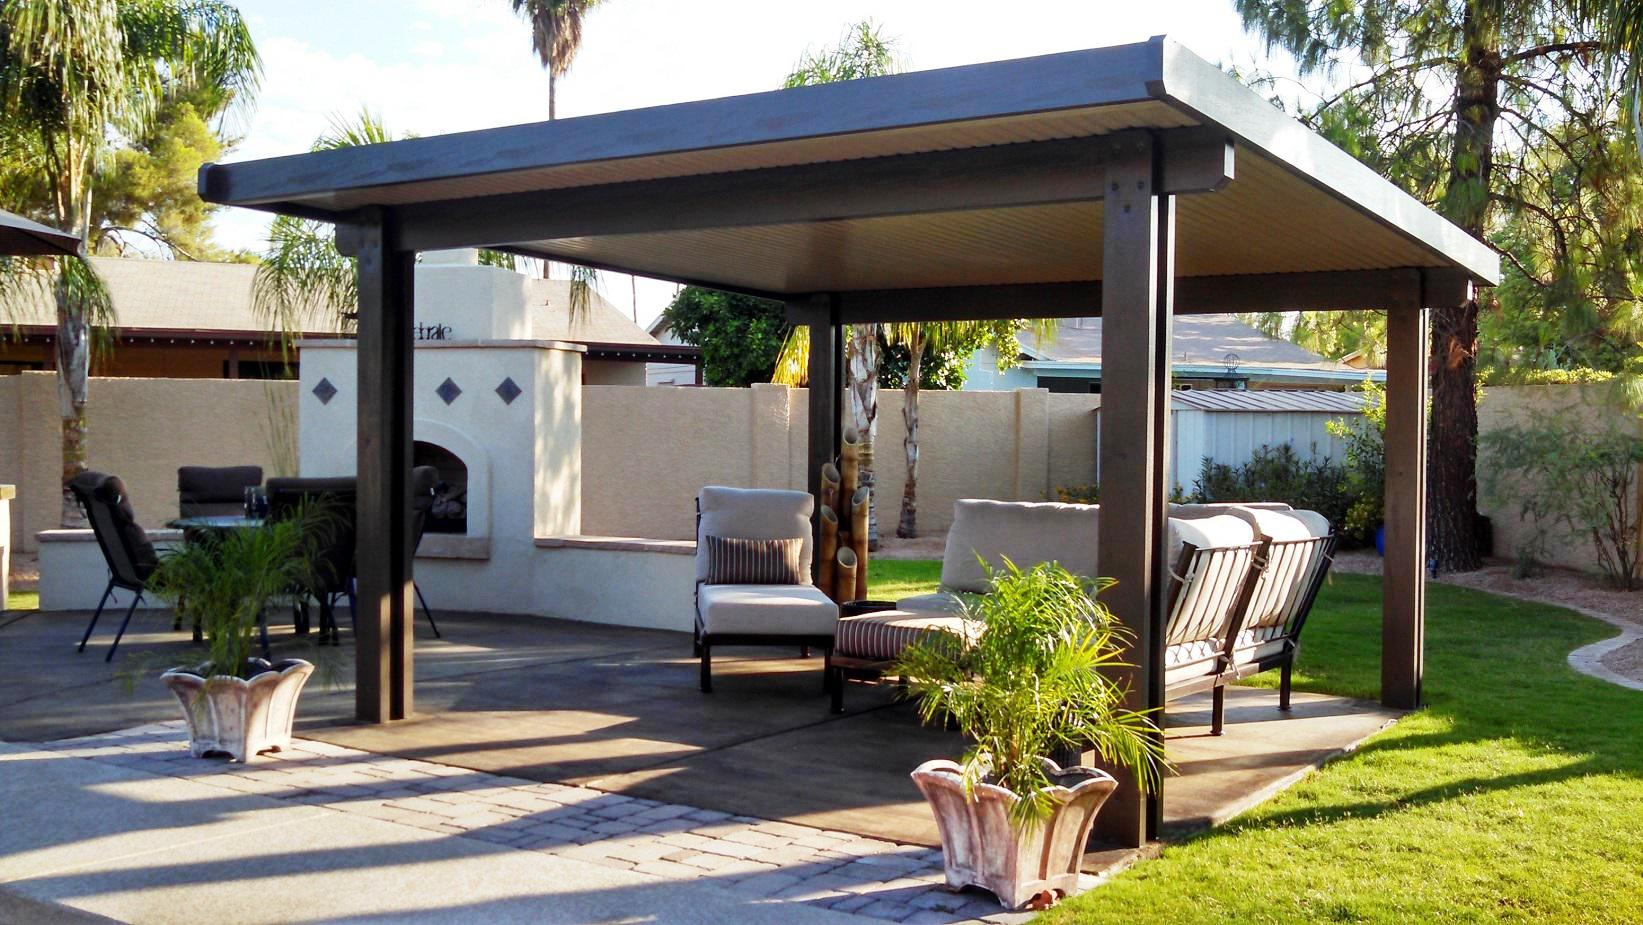 Patio Cover Plans What Is It? — Schmidt Gallery Design on Ideas For Patio Covers  id=46032